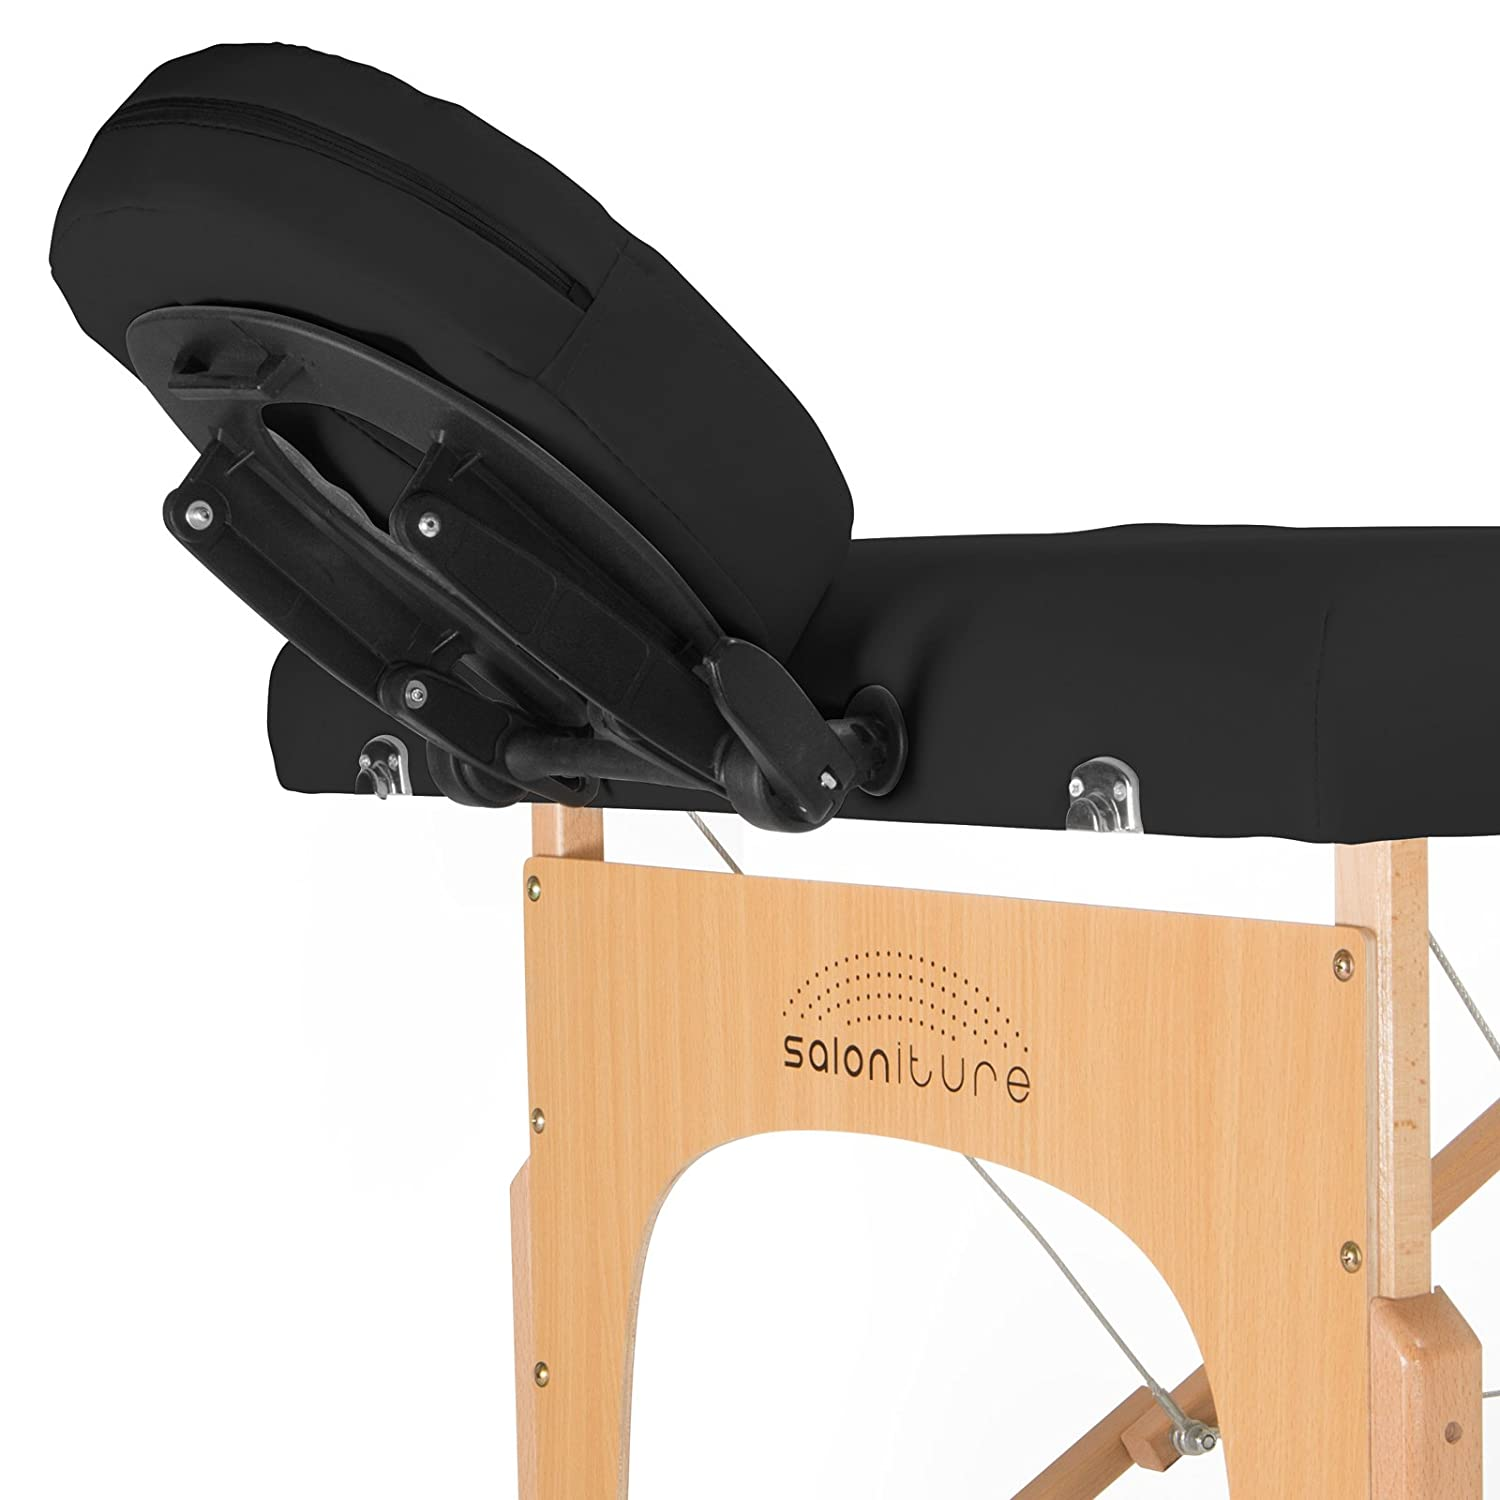 Saloniture Professional Portable Folding Massage Table with Carrying Case - Black: Beauty